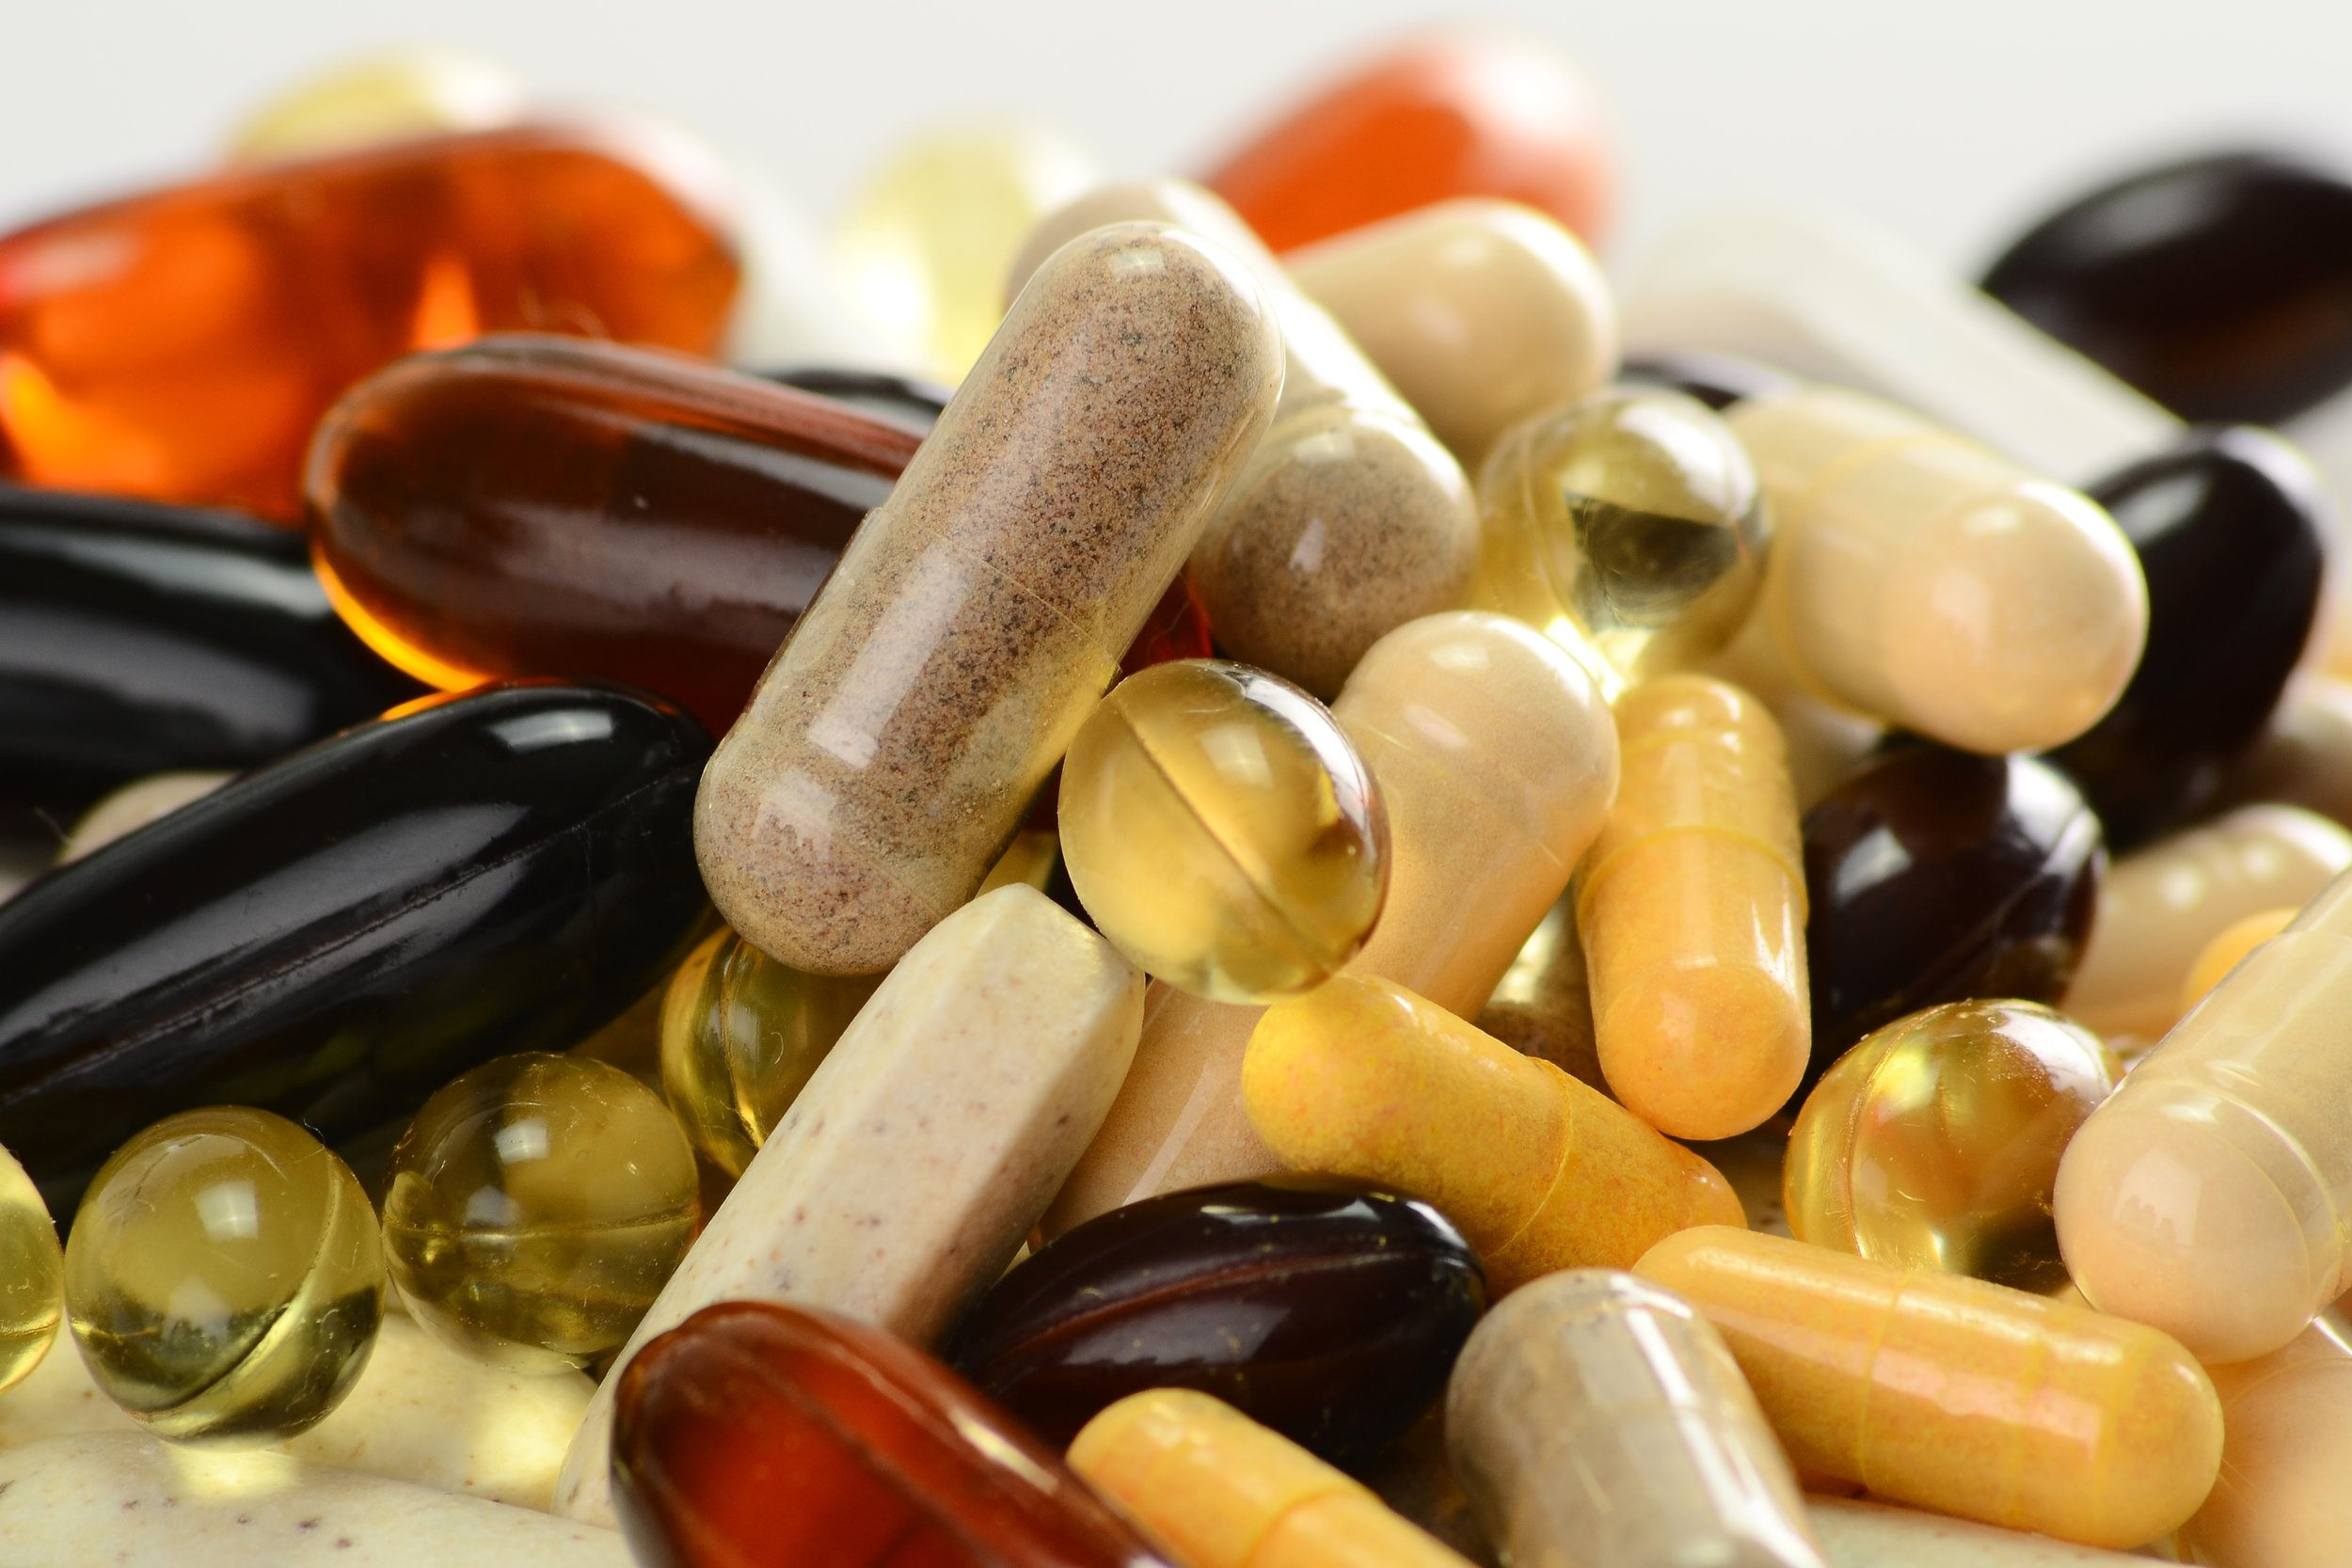 Multivitamin-may-have-pregnancy-benefits-over-folic-acid-and-iron-alone-RCT.jpg